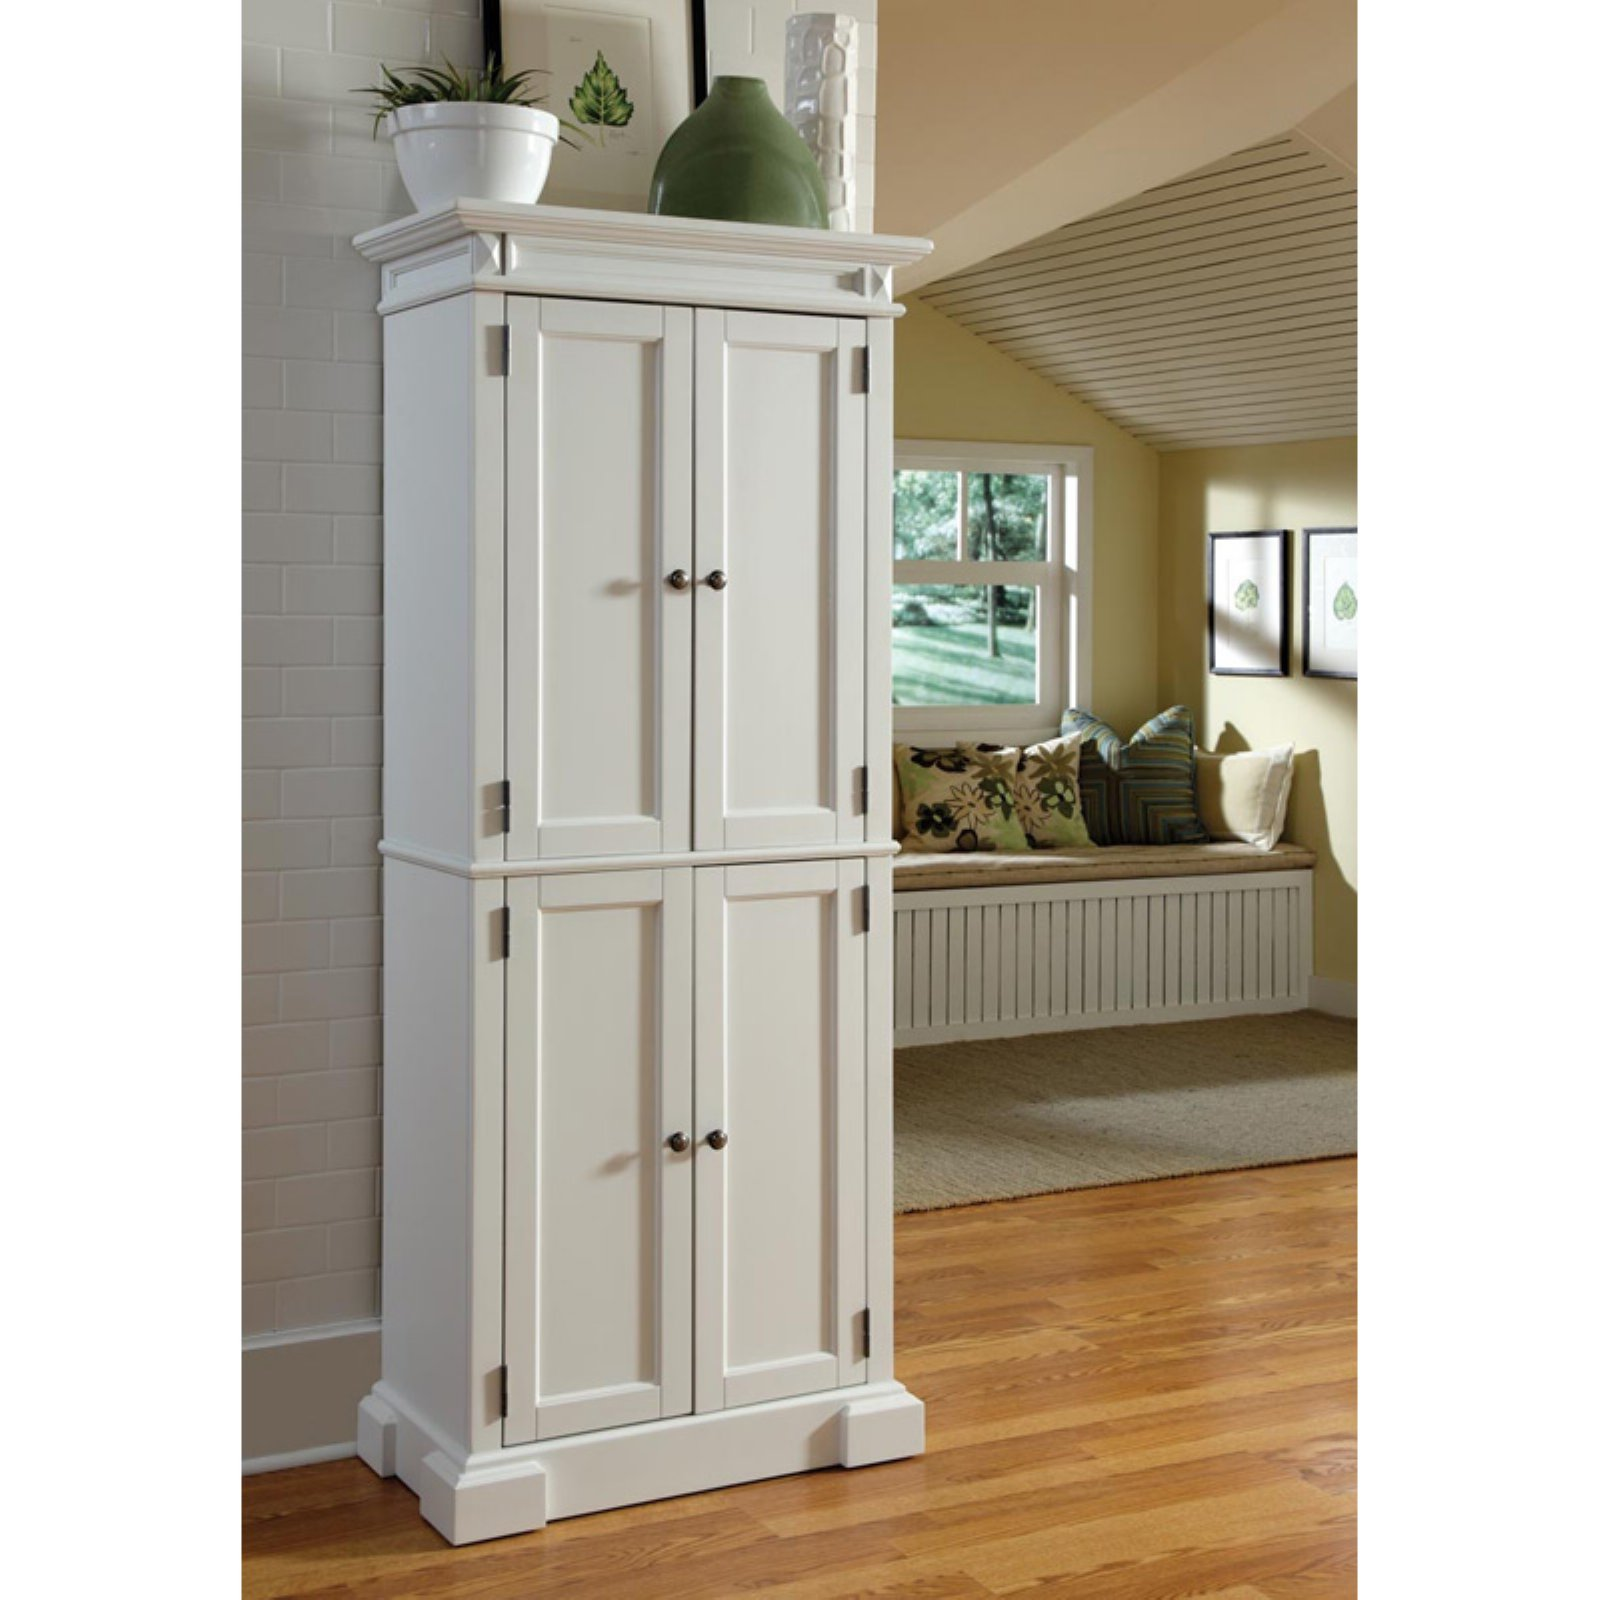 Americana White Pantry By Home Styles Ite Distressed Oak Kitchen Island By Home Styles Pantries Home Kitchen Swl13562 Nl